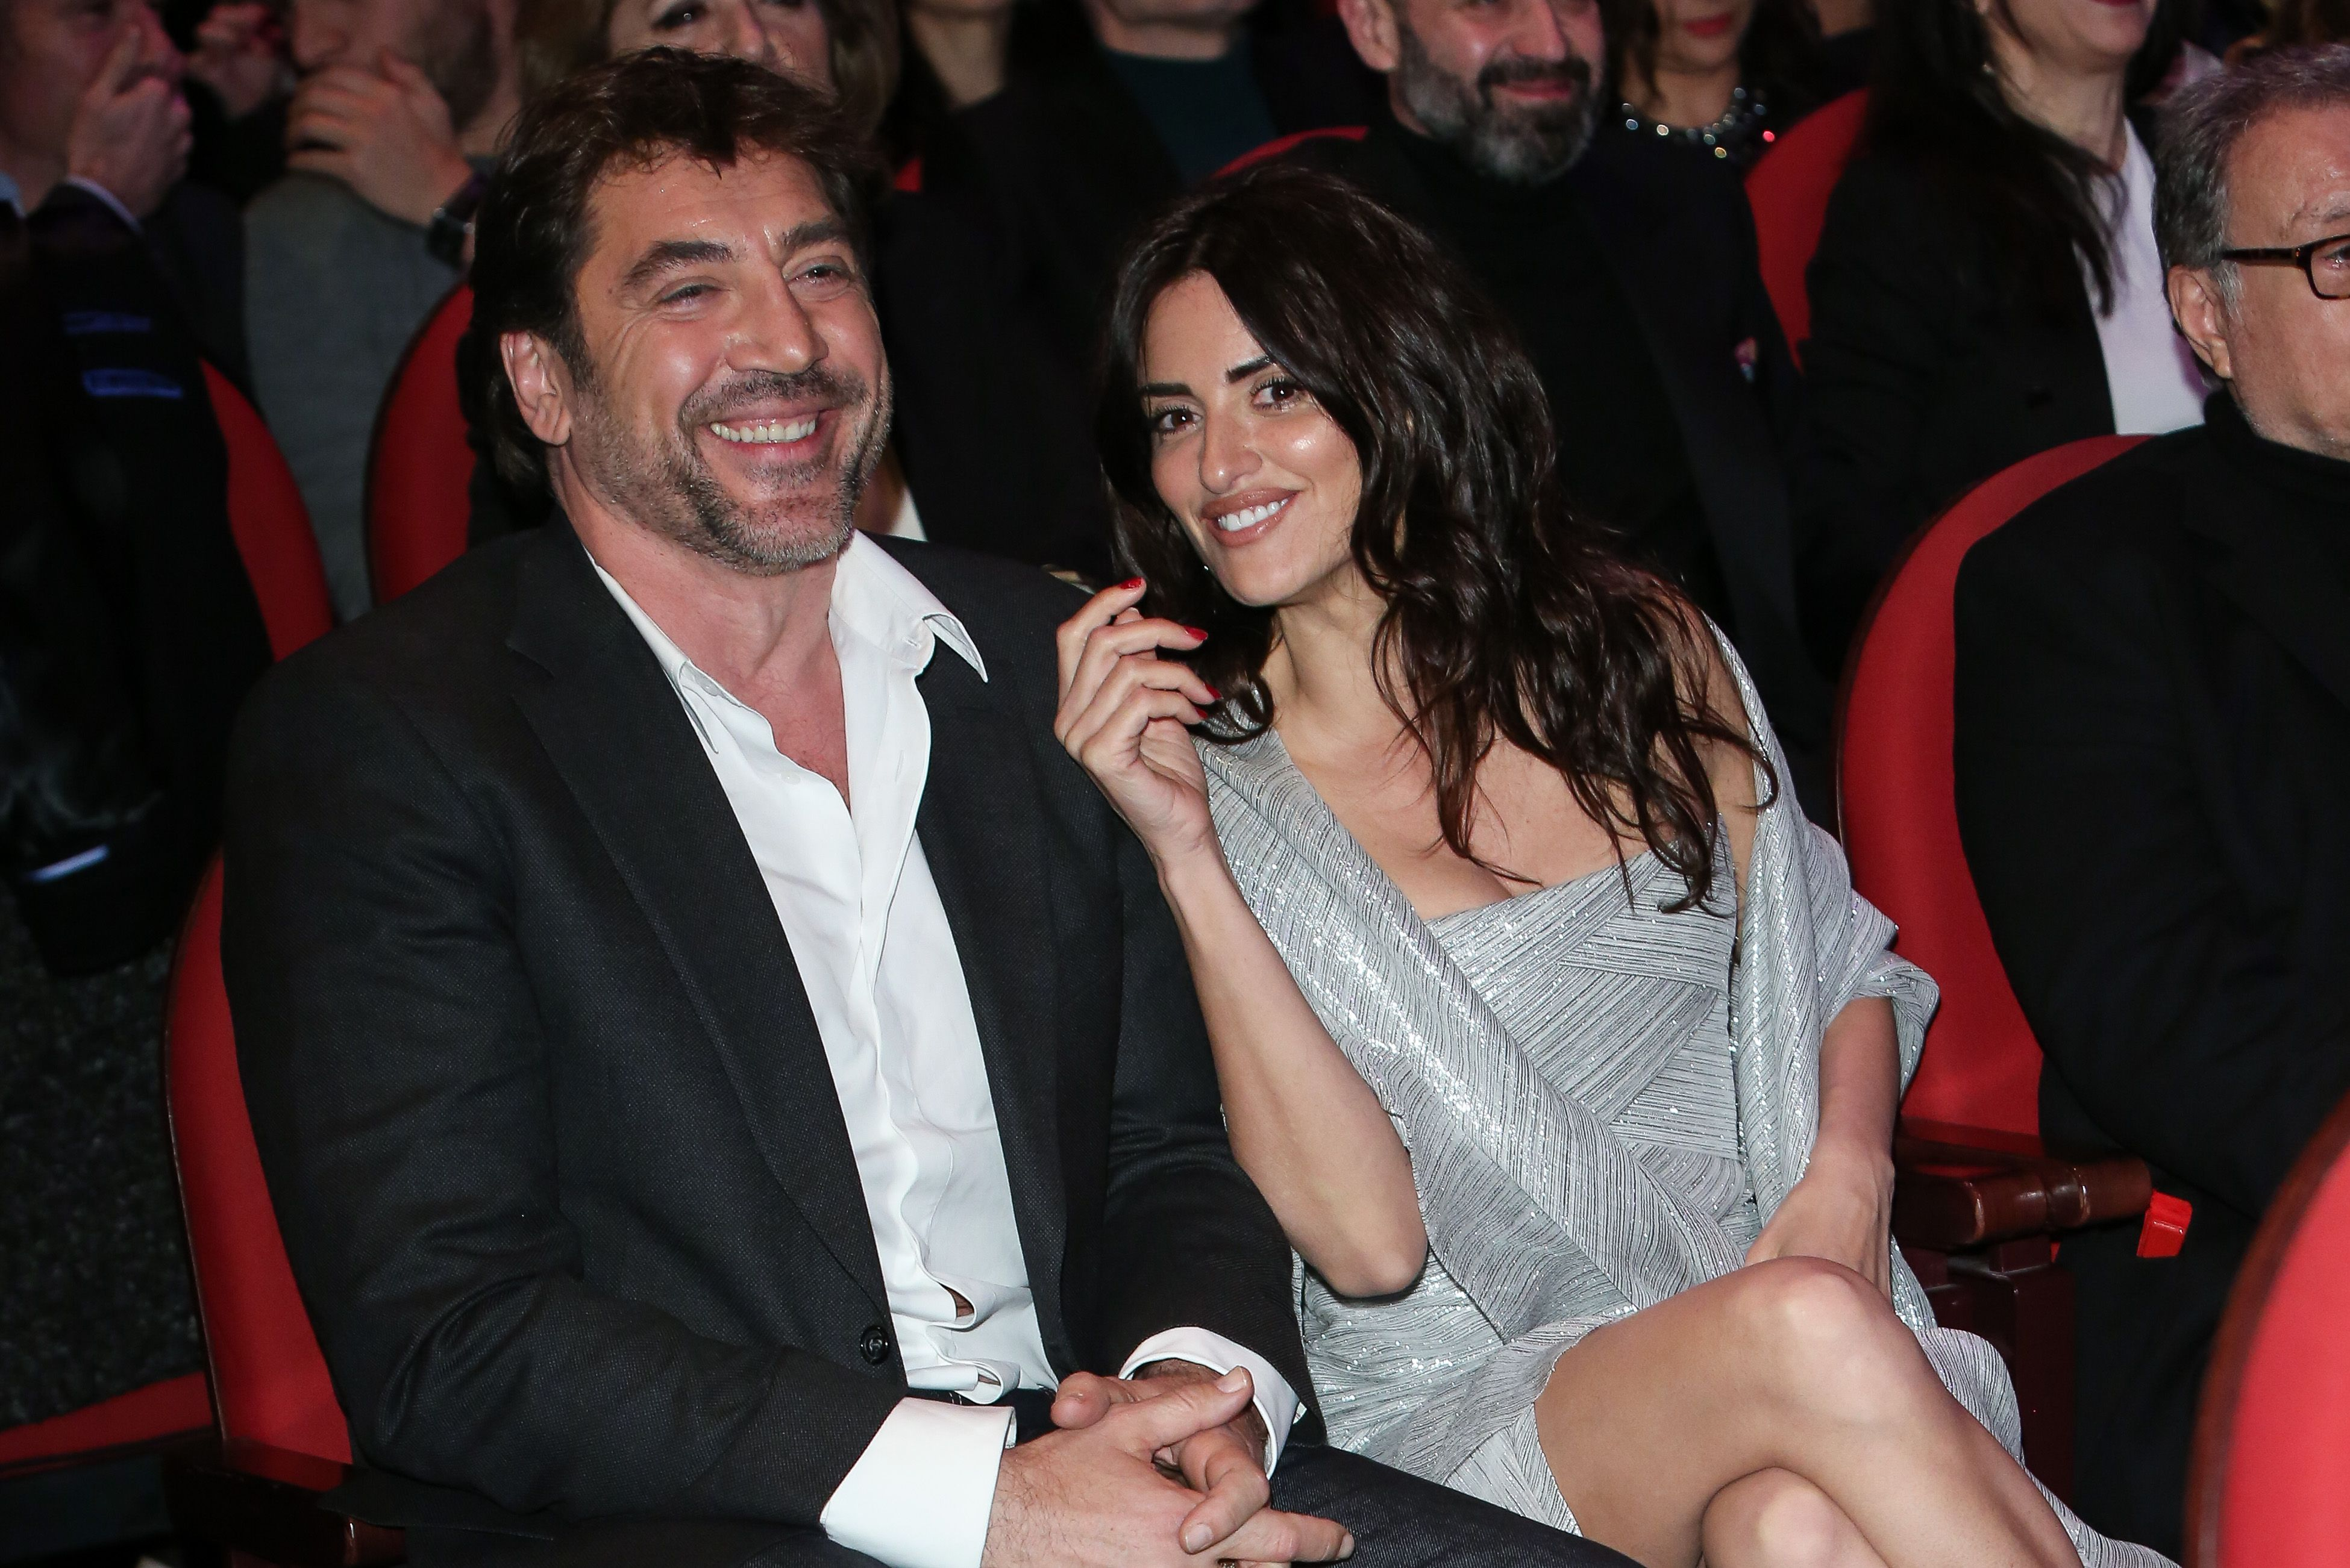 Javier Bardem and Penelope Cruz at the 'Union de Actores' awards gala in 2018 in Madrid, Spain | Source: Getty Images